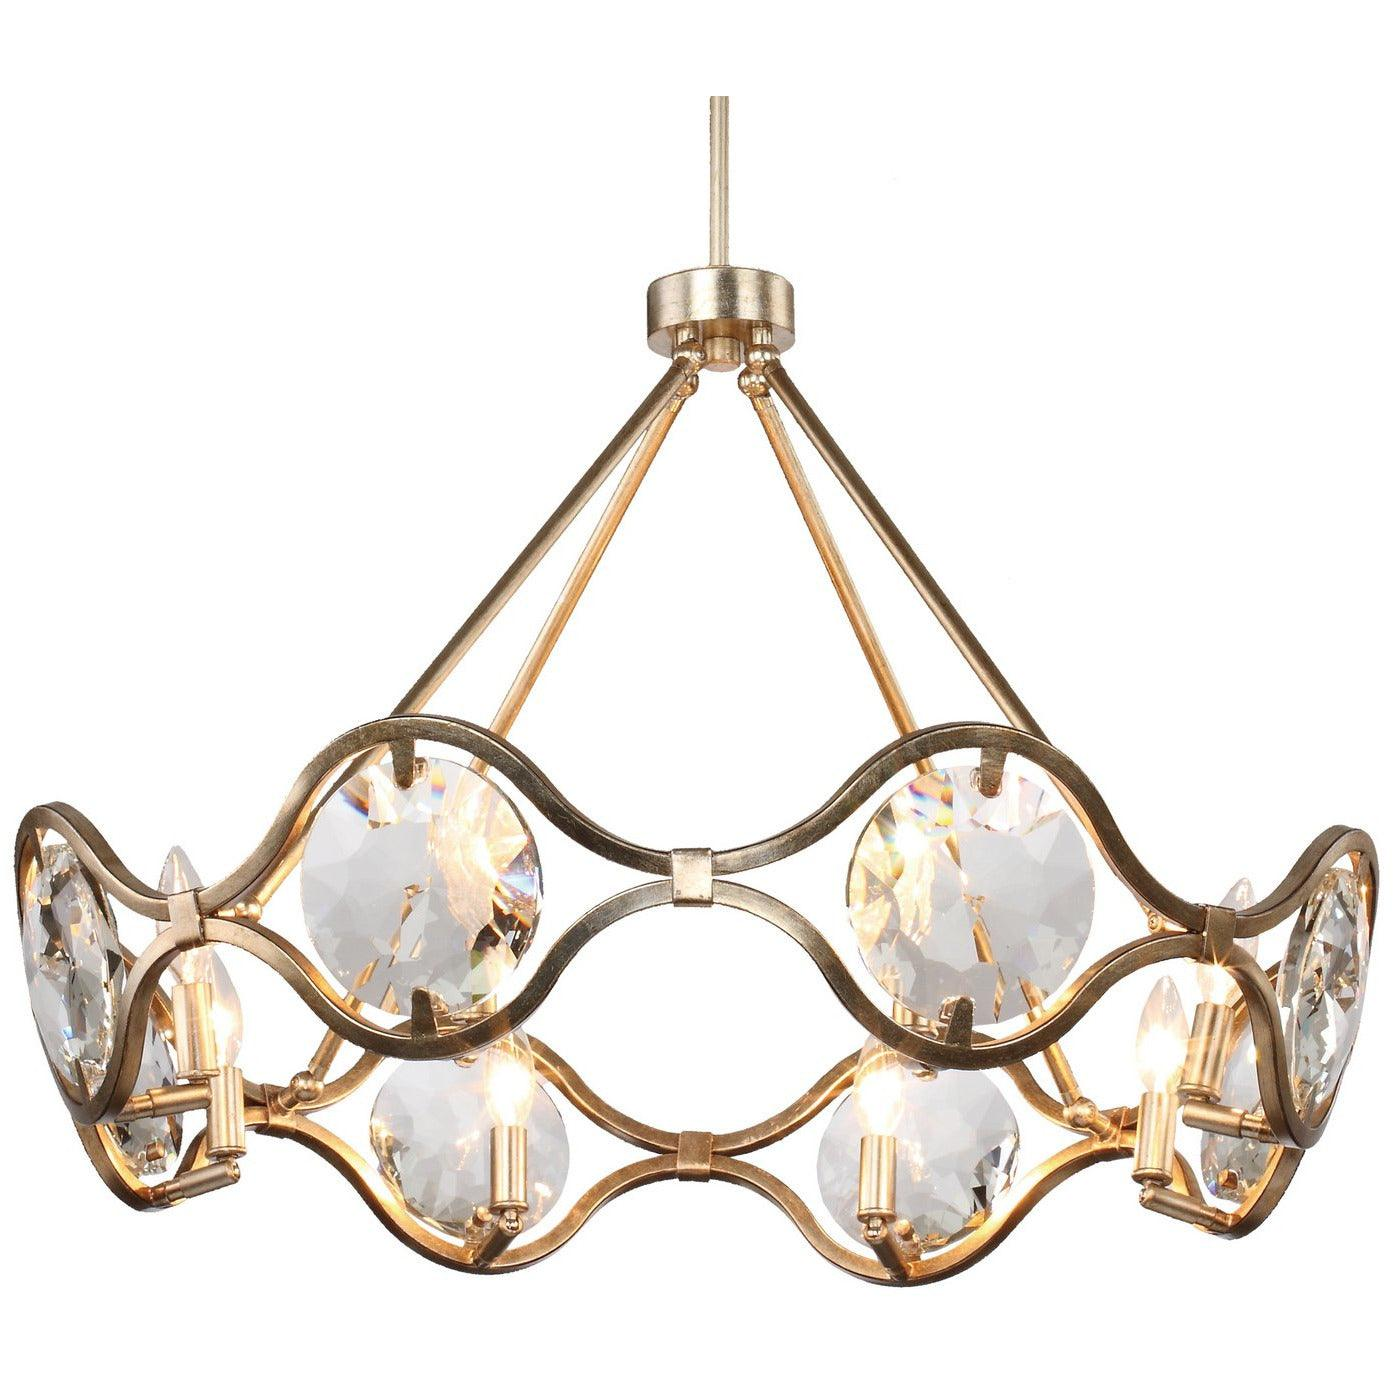 Crystorama - QUI-7628-DT - Eight Light Chandelier - Quincy - Distressed Twilight